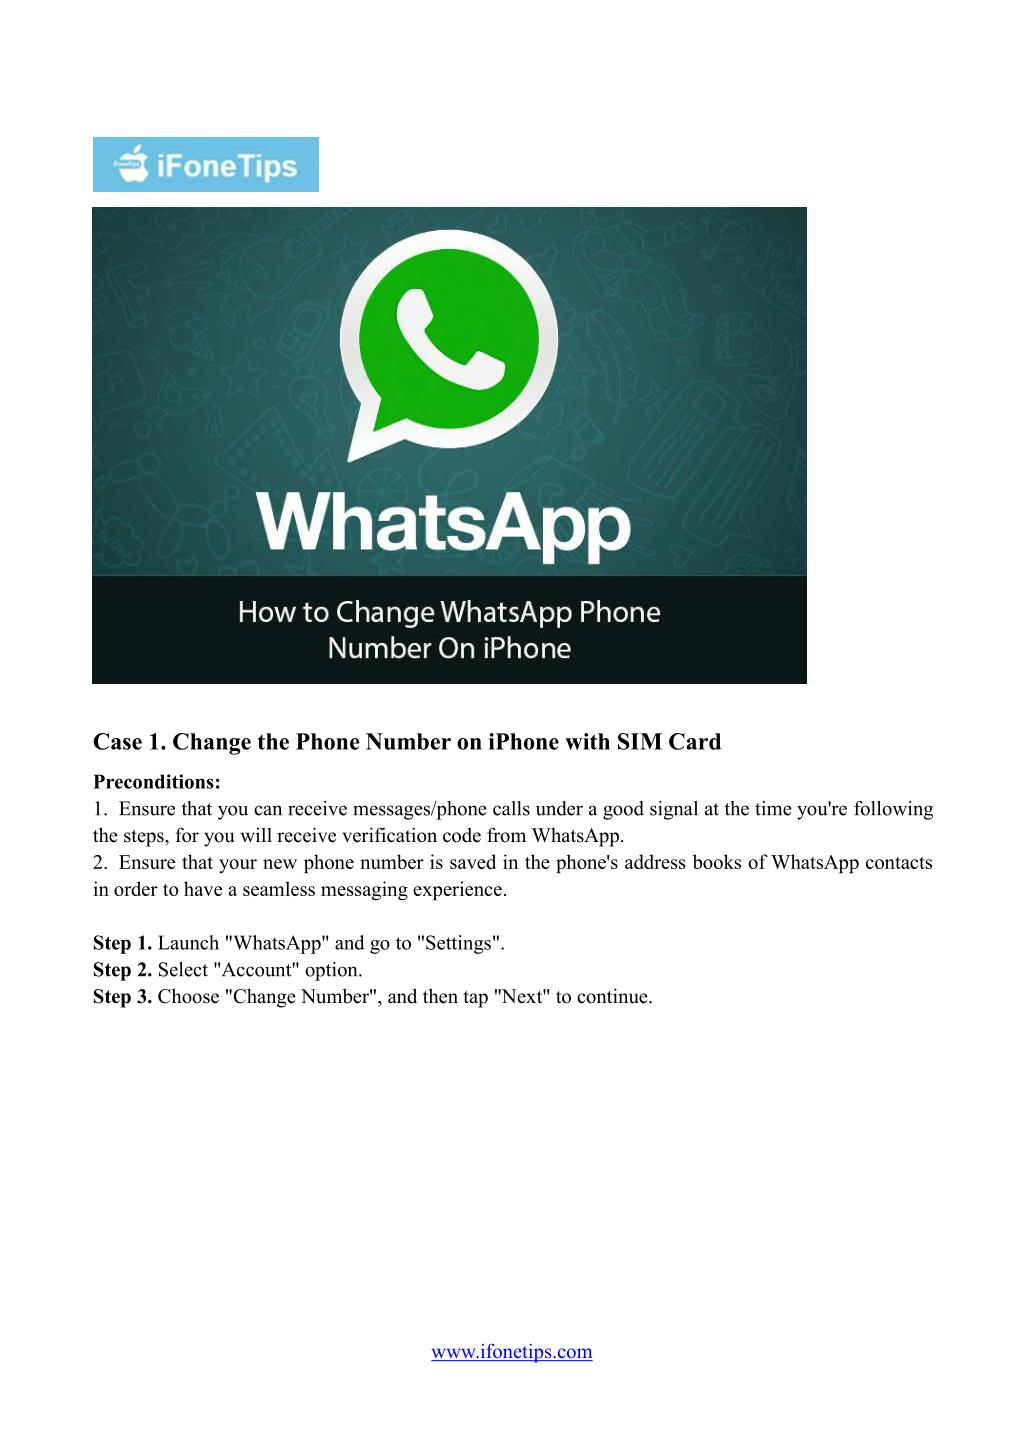 PPT - How Can I Change the Phone Number of WhatsApp on